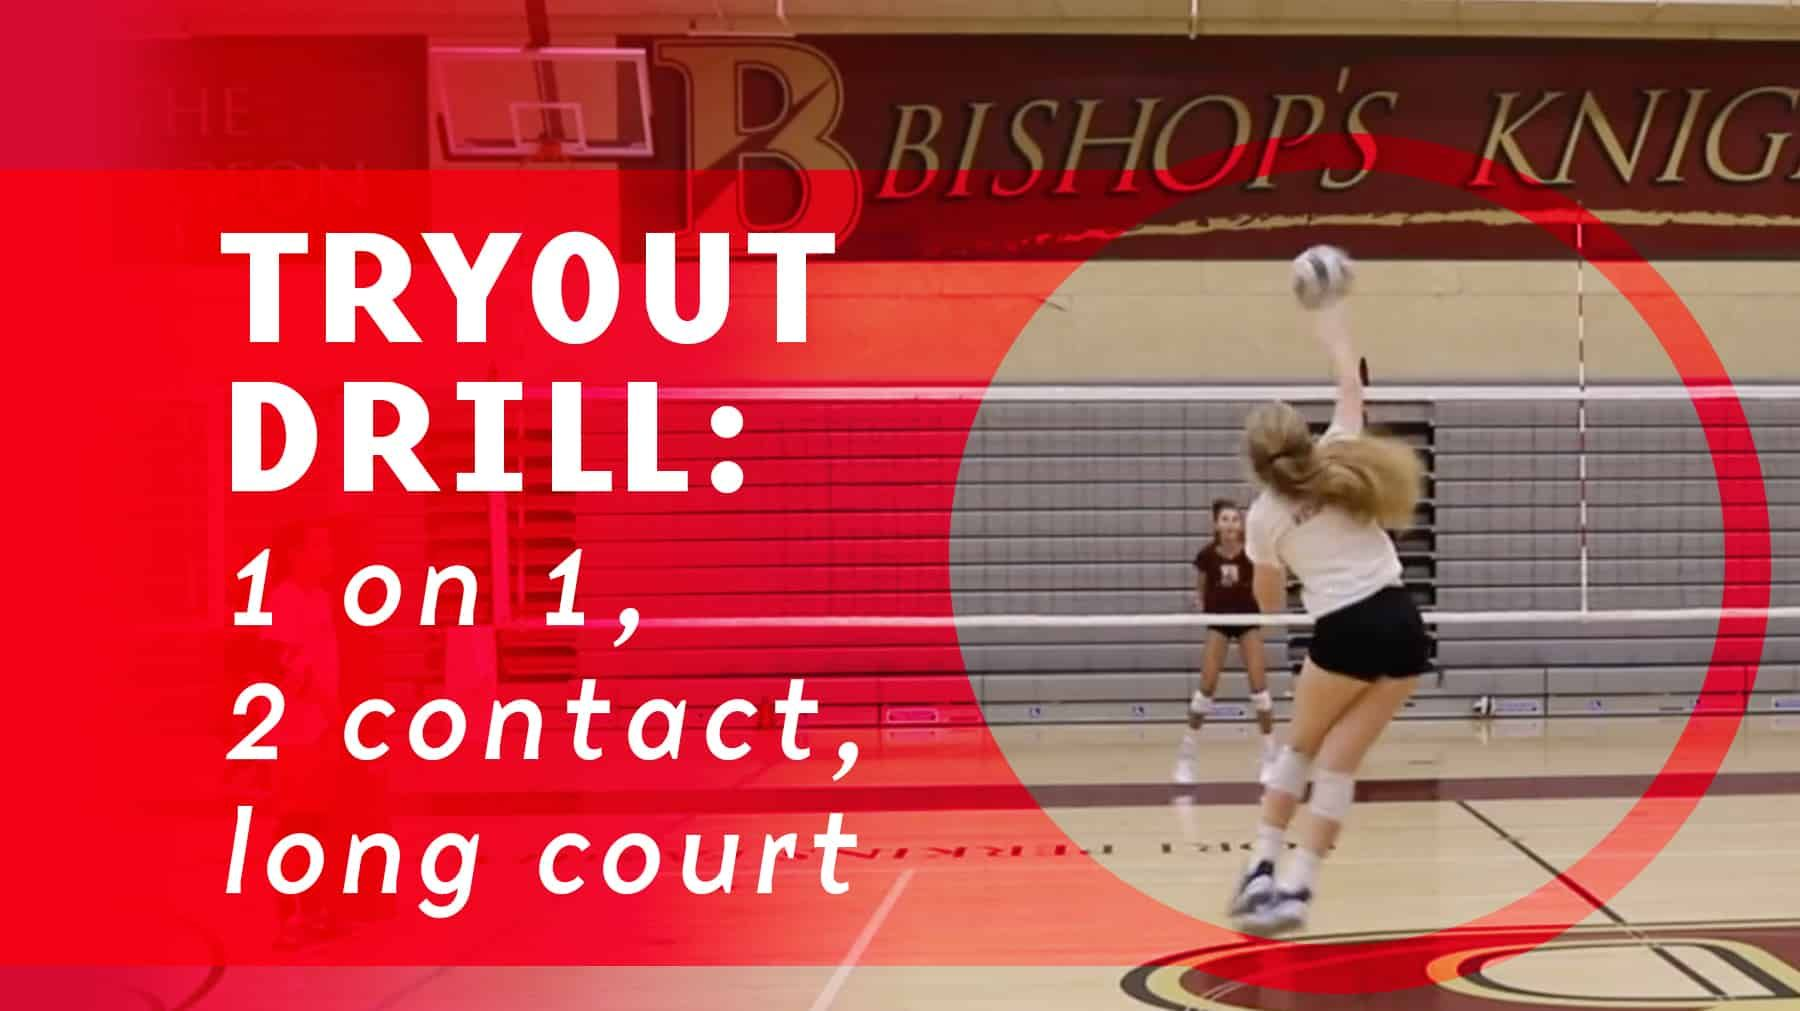 Tryout Drill 1 On 1 2 Contact Long Court The Art Of Coaching Volleyball Coaching Volleyball Volleyball Skills Volleyball Tryouts